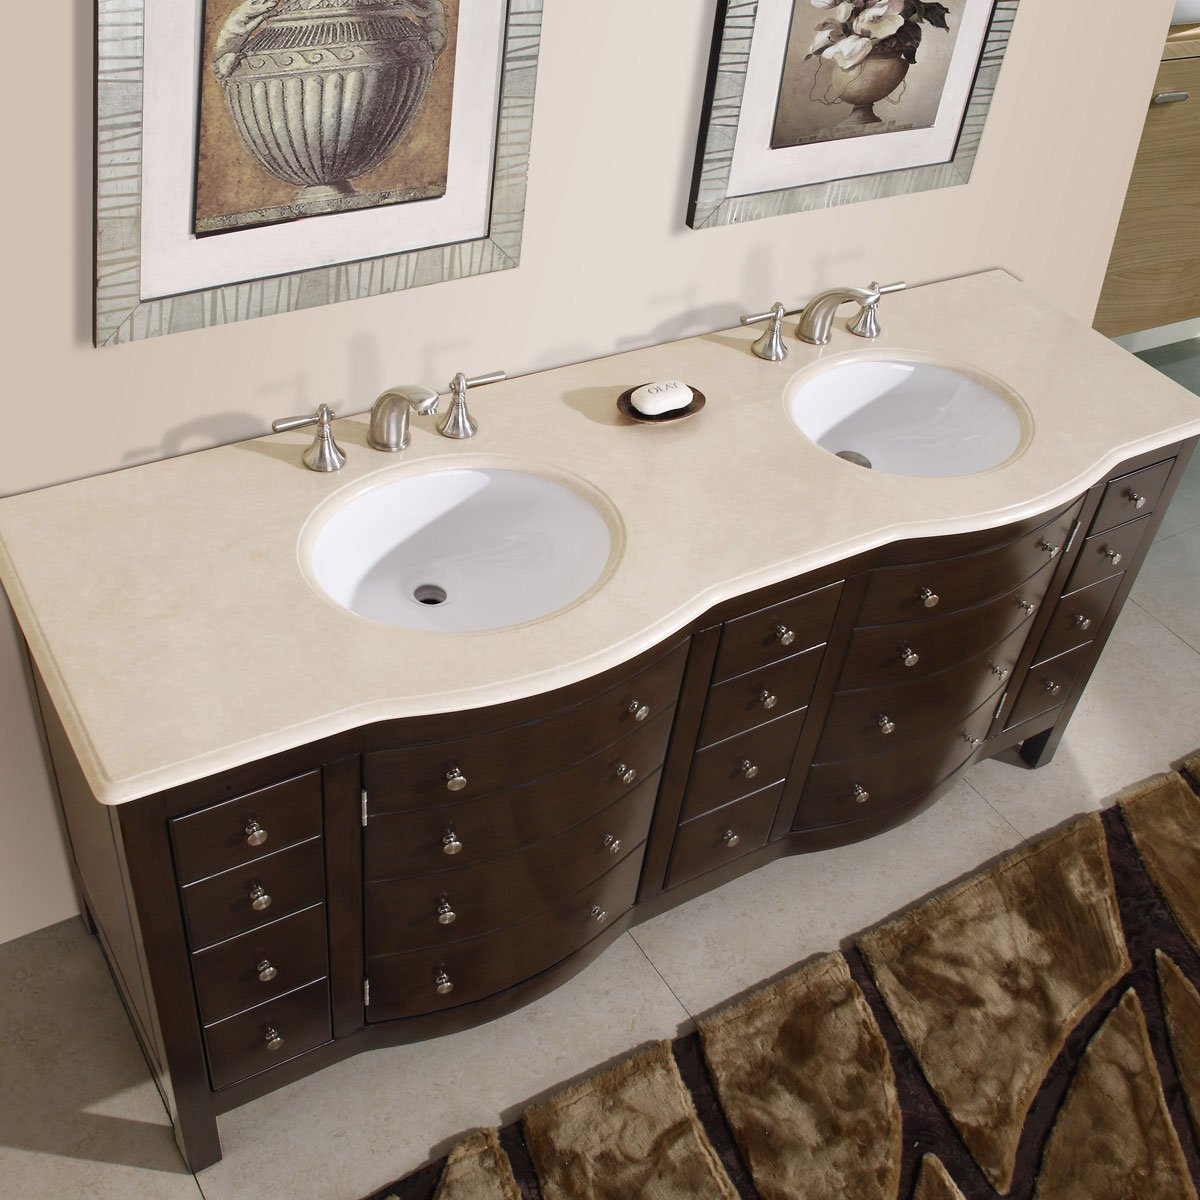 Amazon.com: Silkroad Exclusive Cream Marfil Marble Stone Double Sink Bathroom  Vanity With Cabinet, 72 Inch: Home U0026 Kitchen